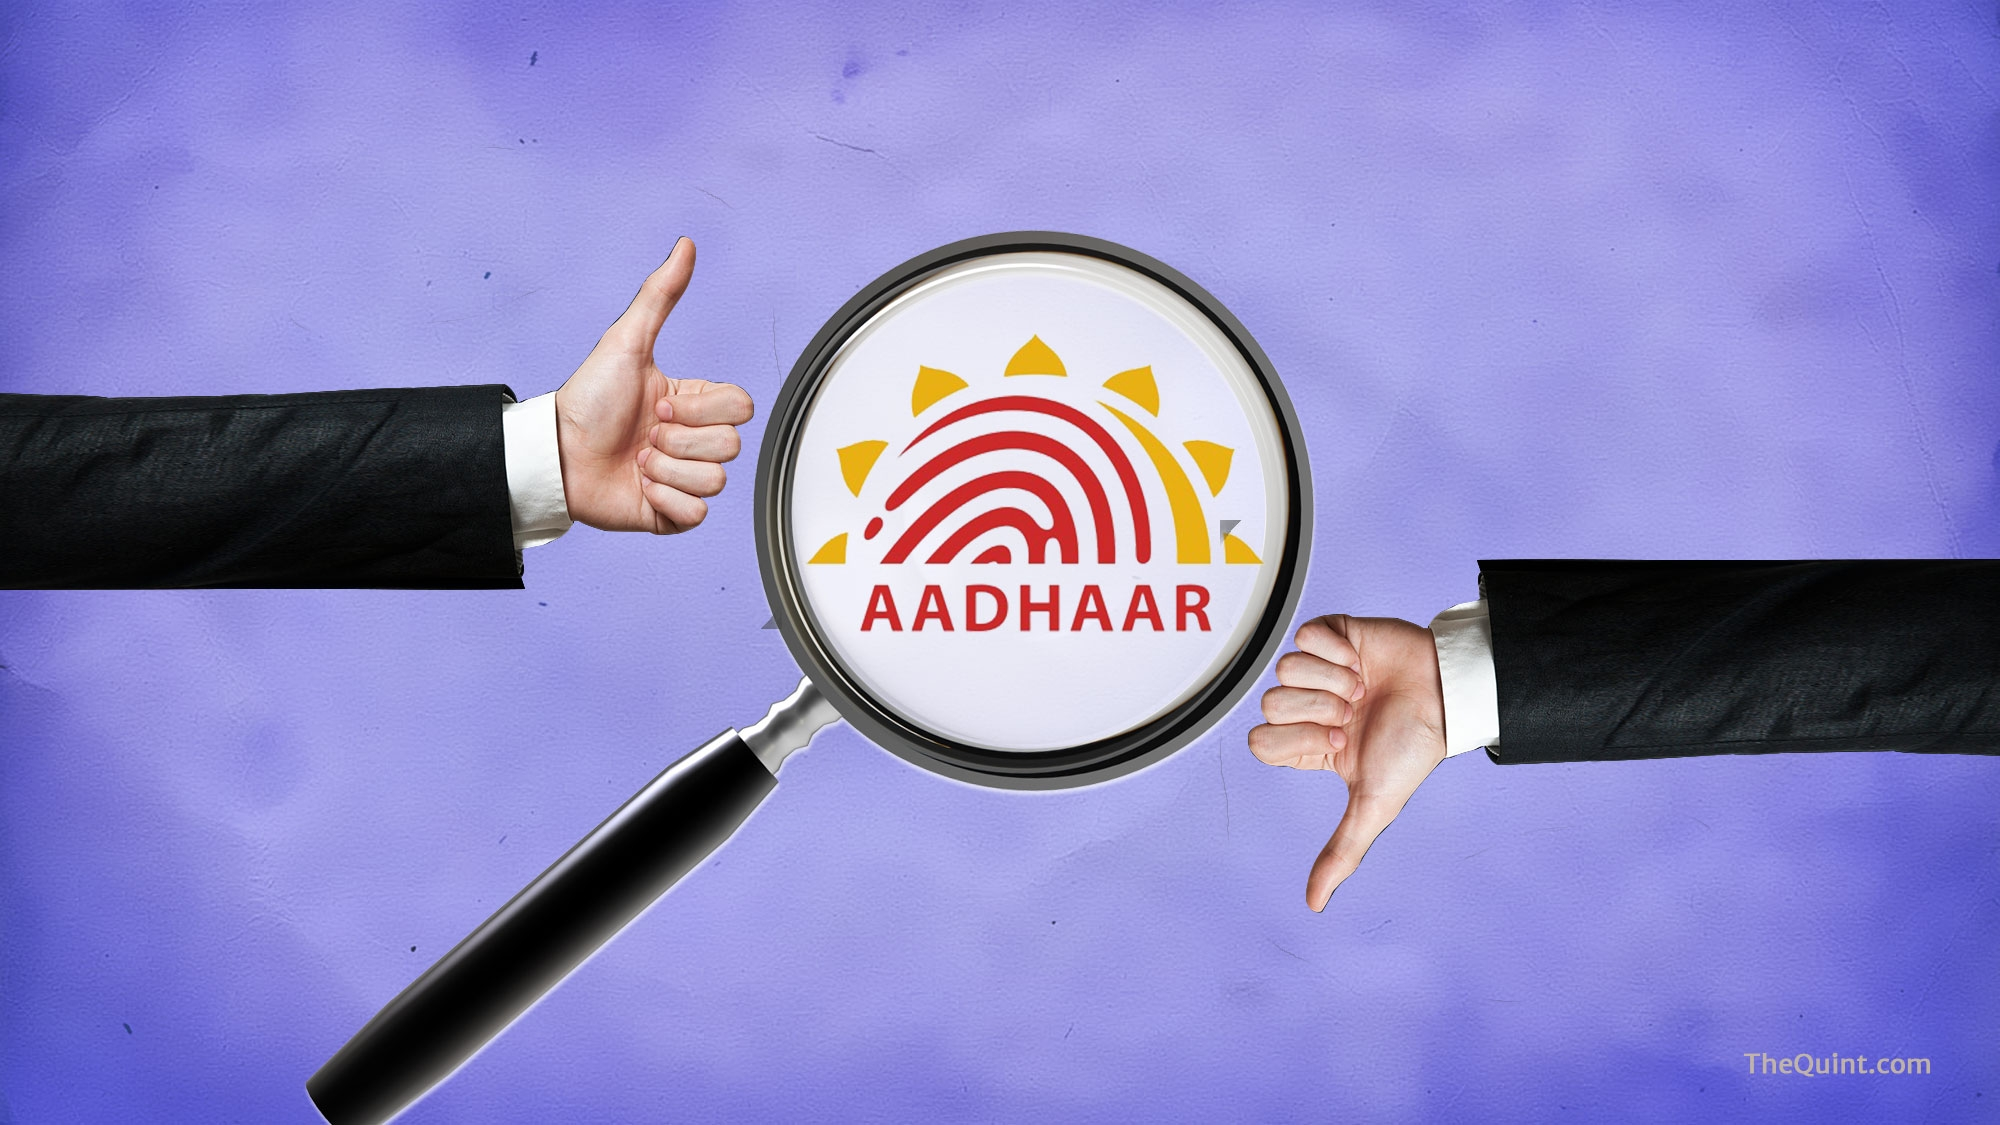 Chhattisgarh HC Makes Aadhaar Mandatory For Bail